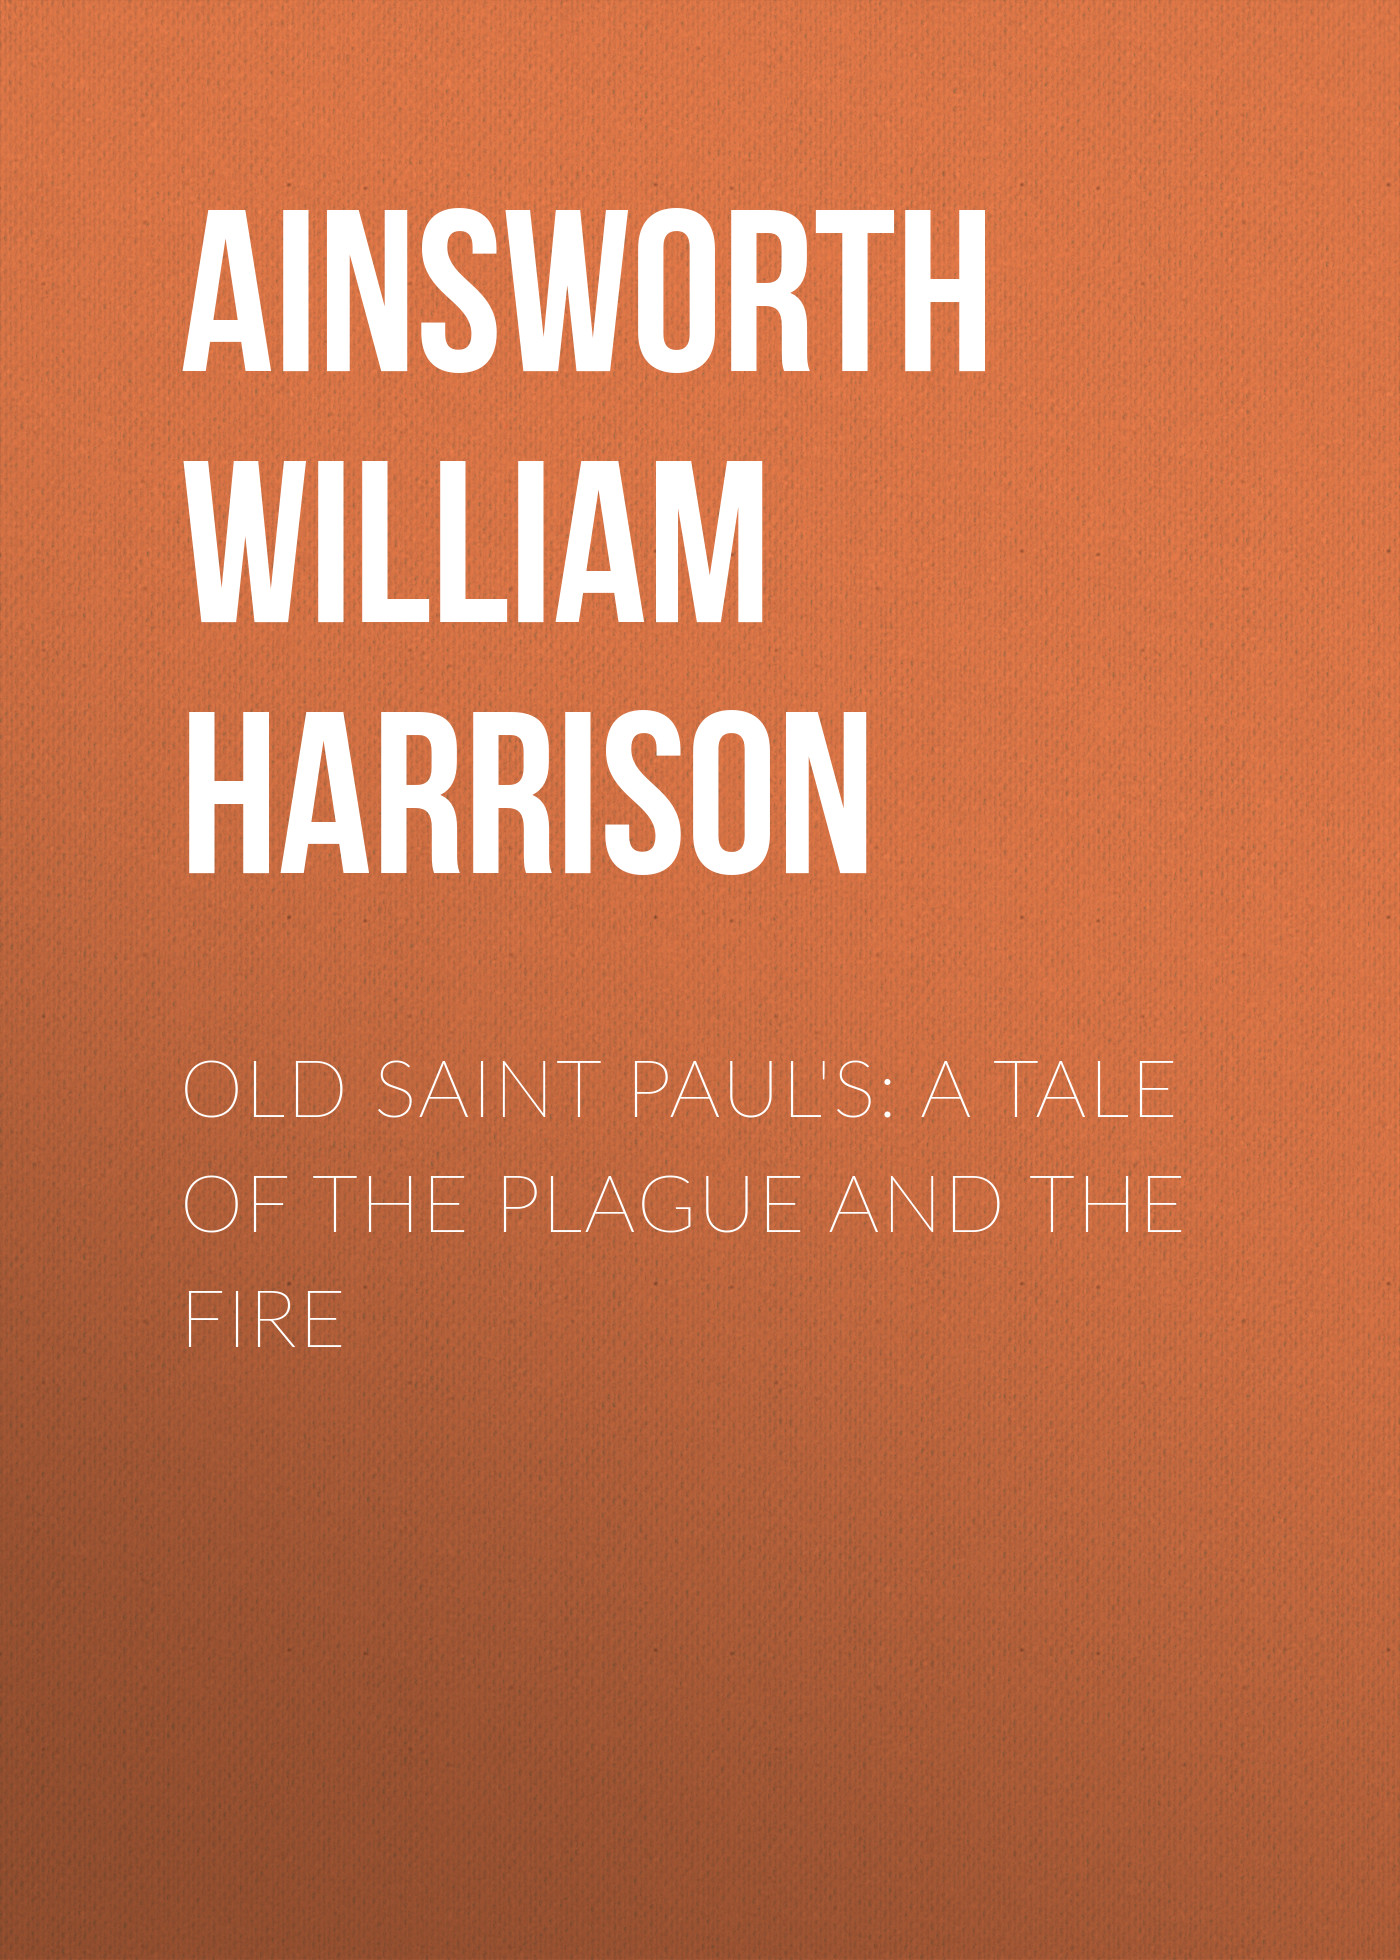 Ainsworth William Harrison Old Saint Paul's: A Tale of the Plague and the Fire william congreve the old batchelor